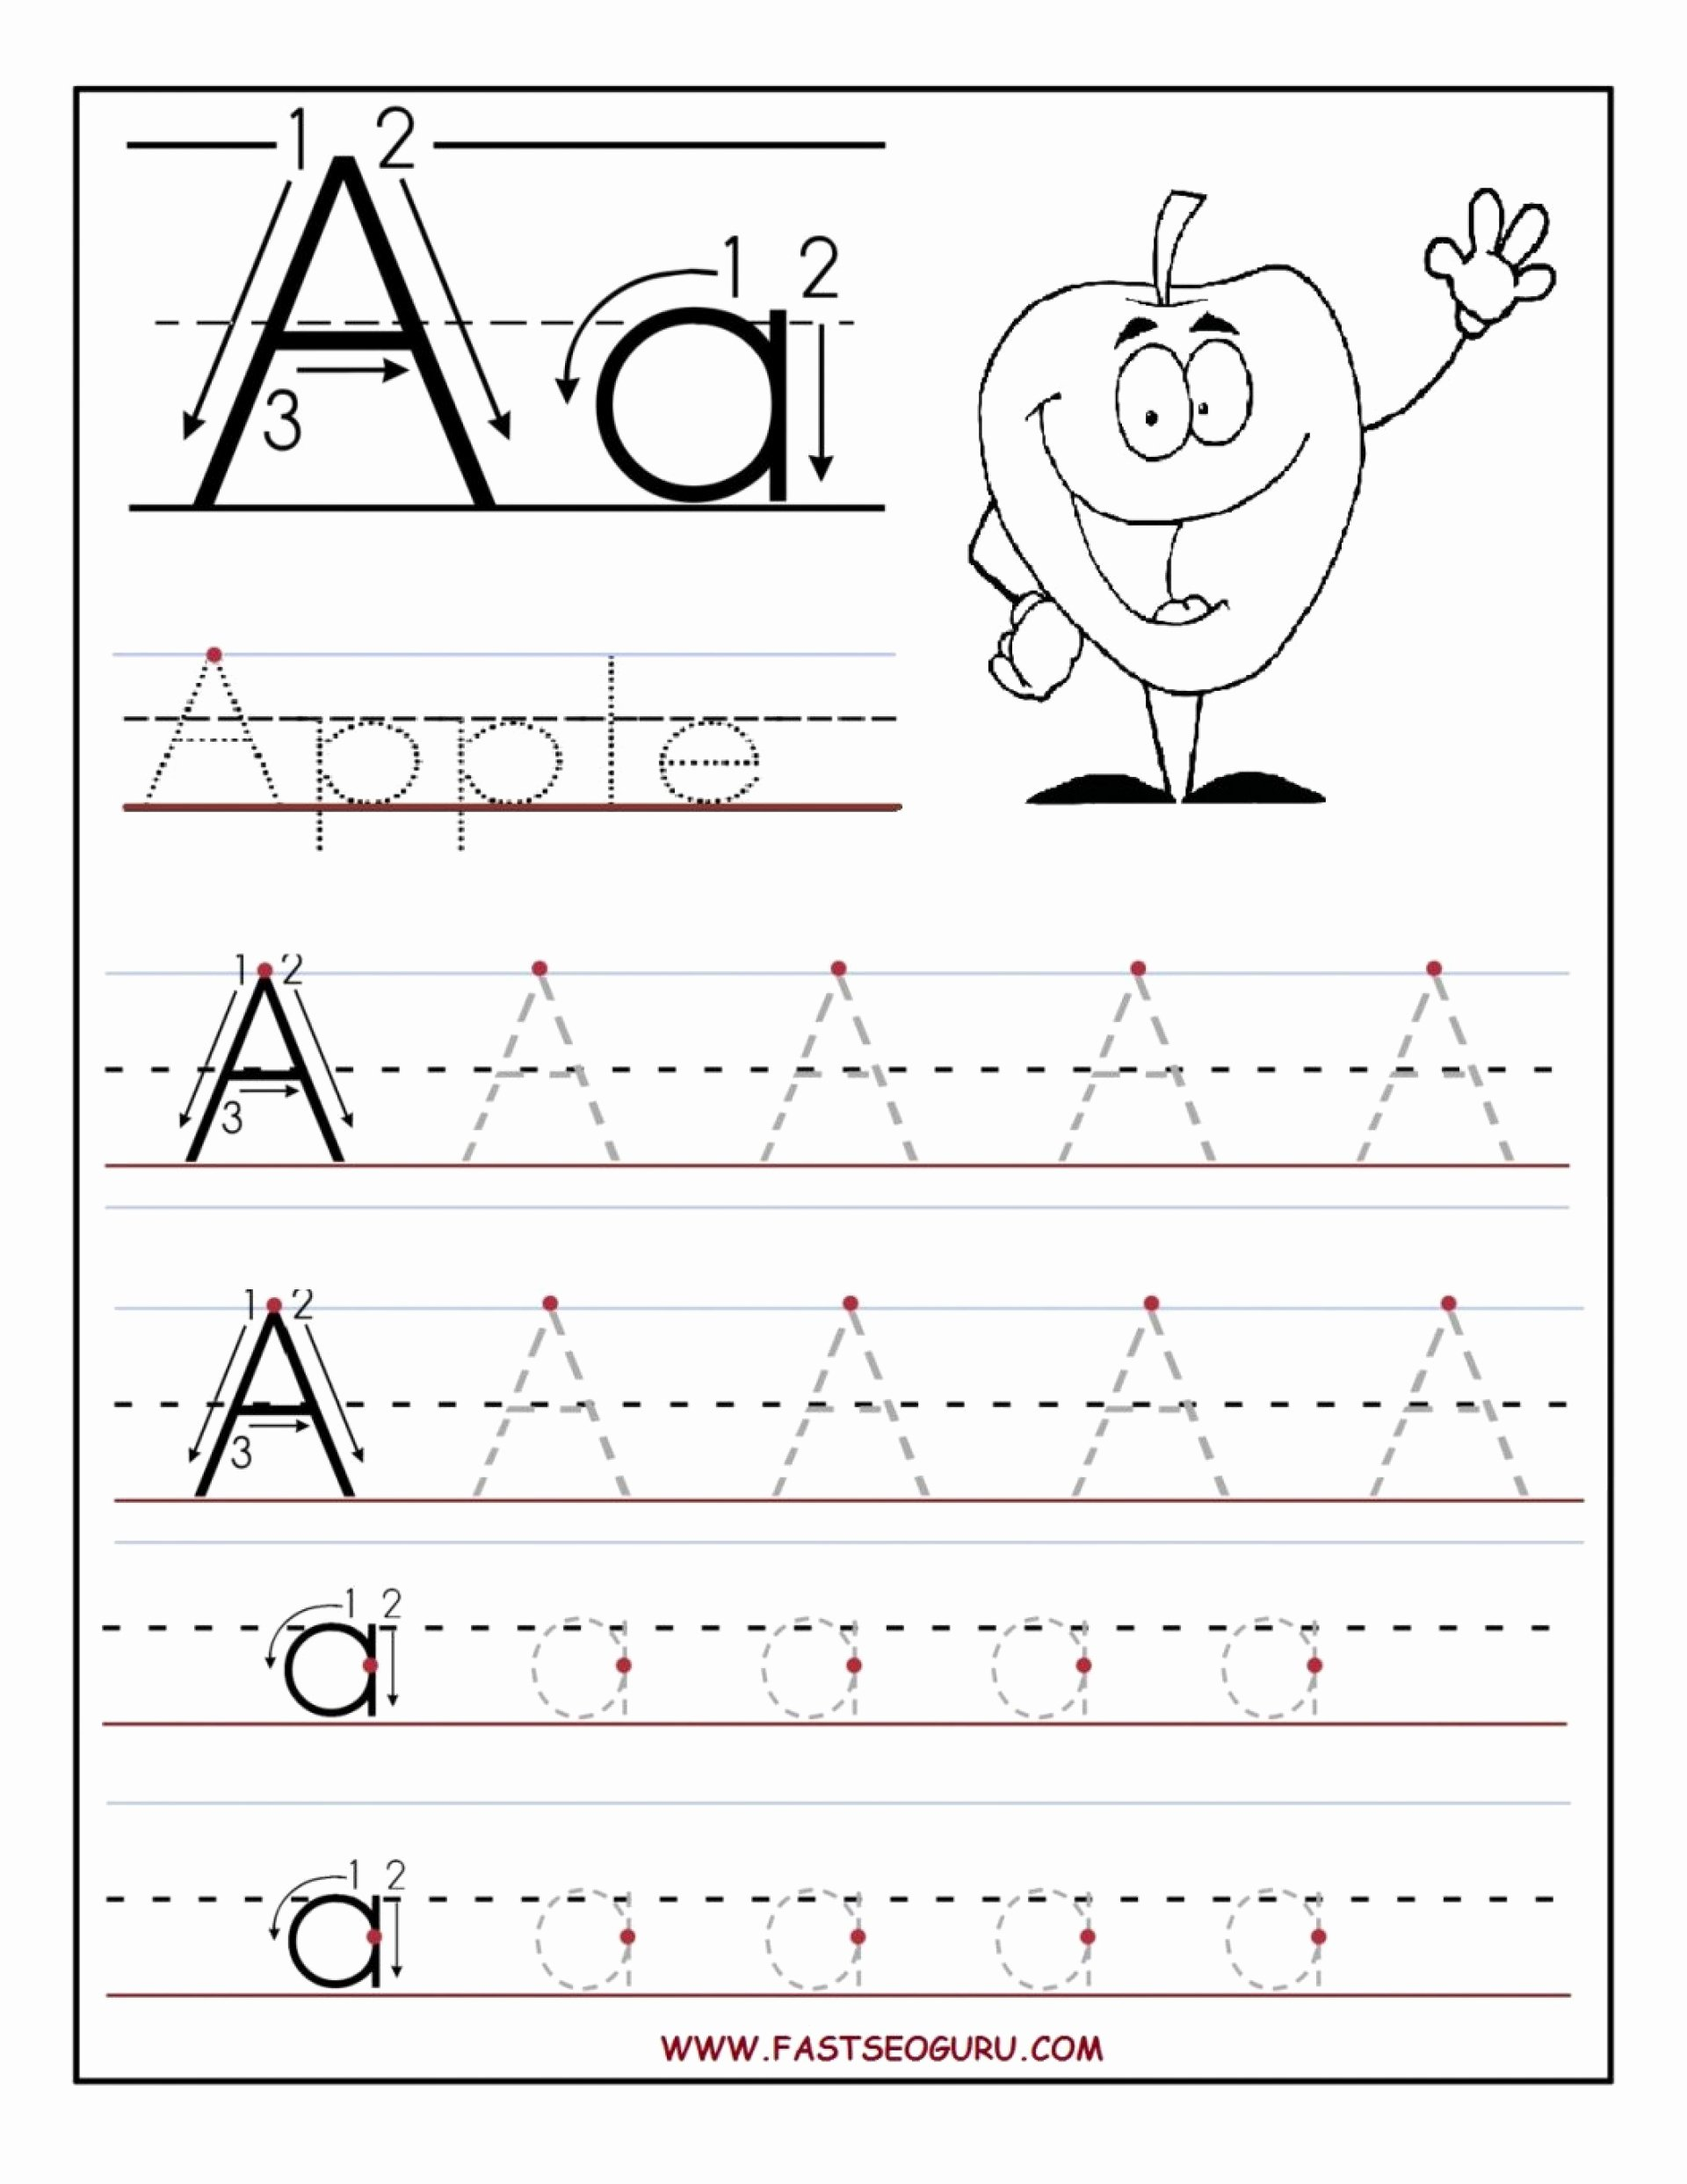 Learning Letters Worksheets for Preschoolers New Coloring Book Preschool Free Printable Worksheets Tracing